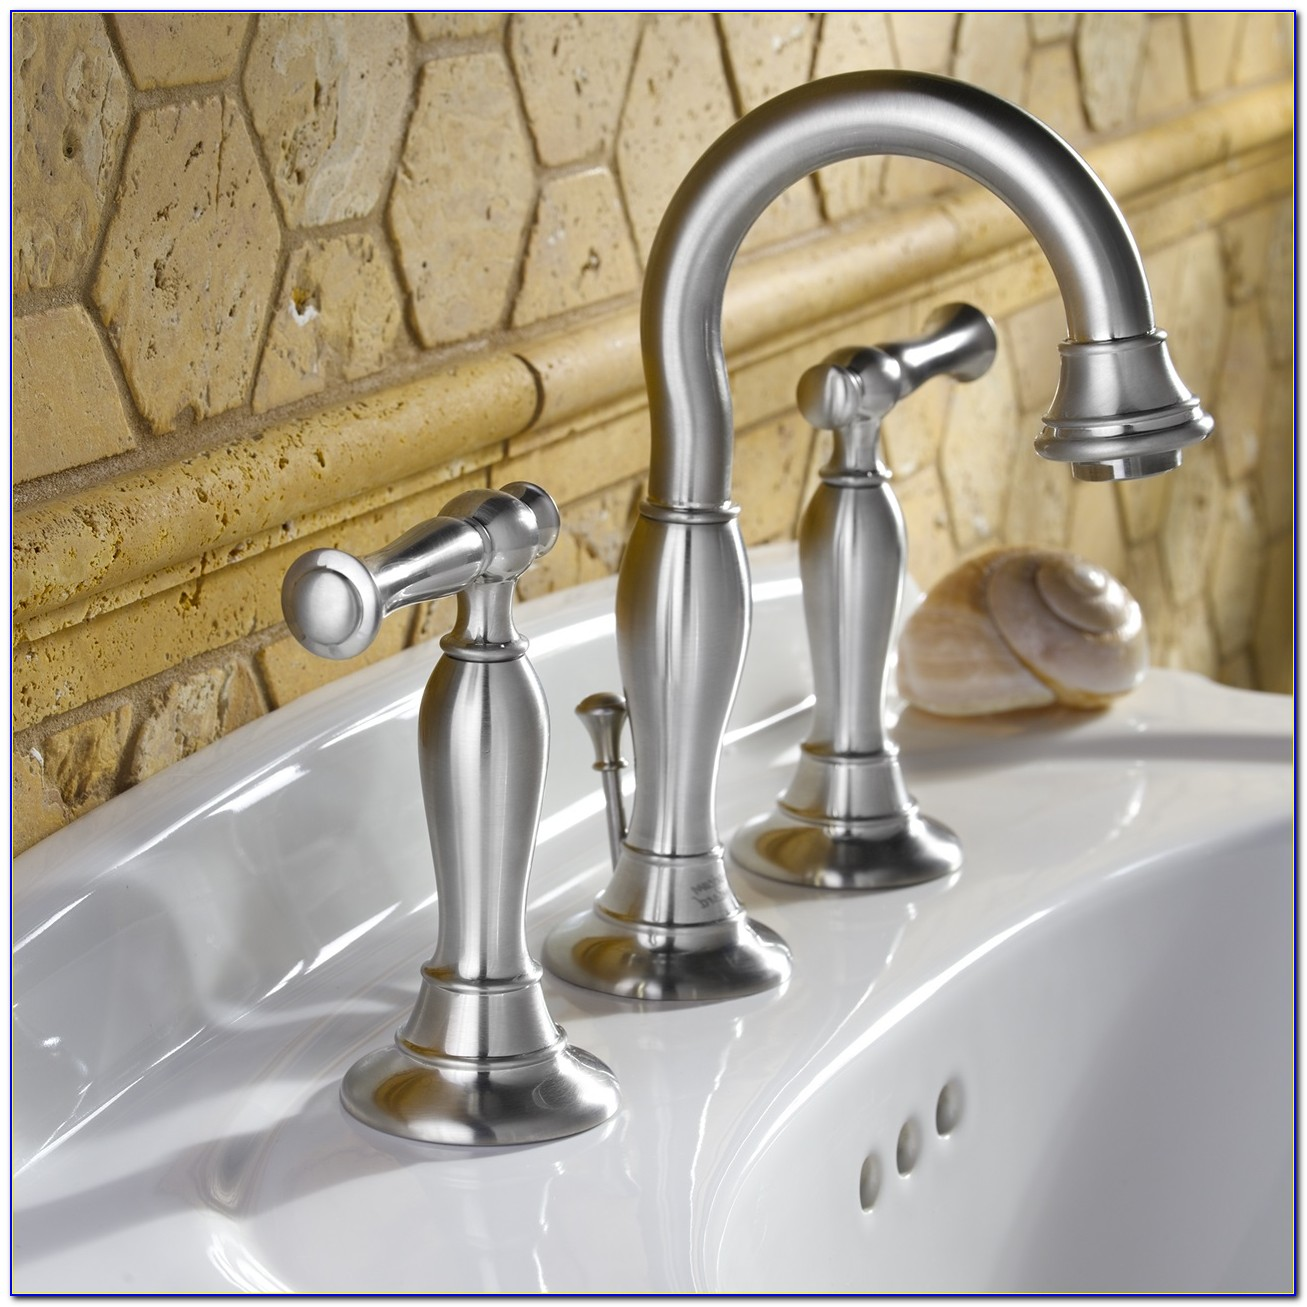 Moen Bathroom Faucet 8 Inch Spread